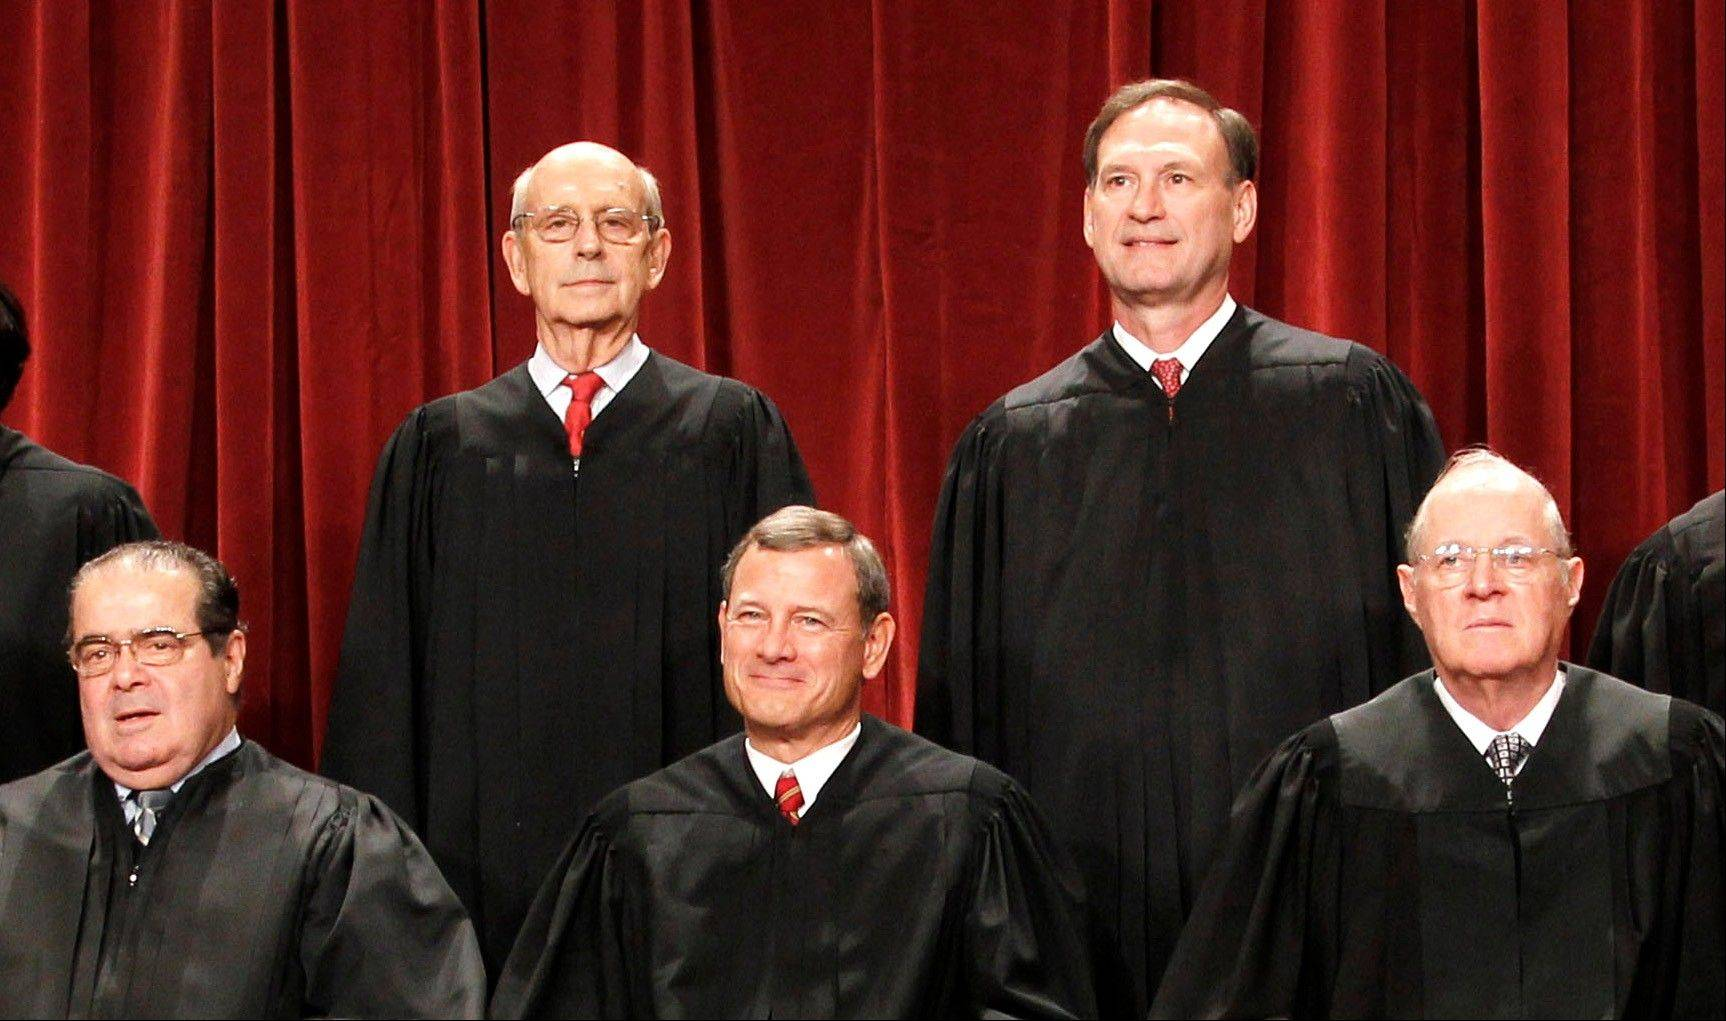 U.S. Supreme Court: Four Republican-appointed justices, front row from left, Antonin Scalia, Chief Justice John Roberts, Anthony M. Kennedy and top right, Samuel Alito Jr., control the fate of President Barack Obama's health care overhaul. At top left is Justice Stephen Breyer.